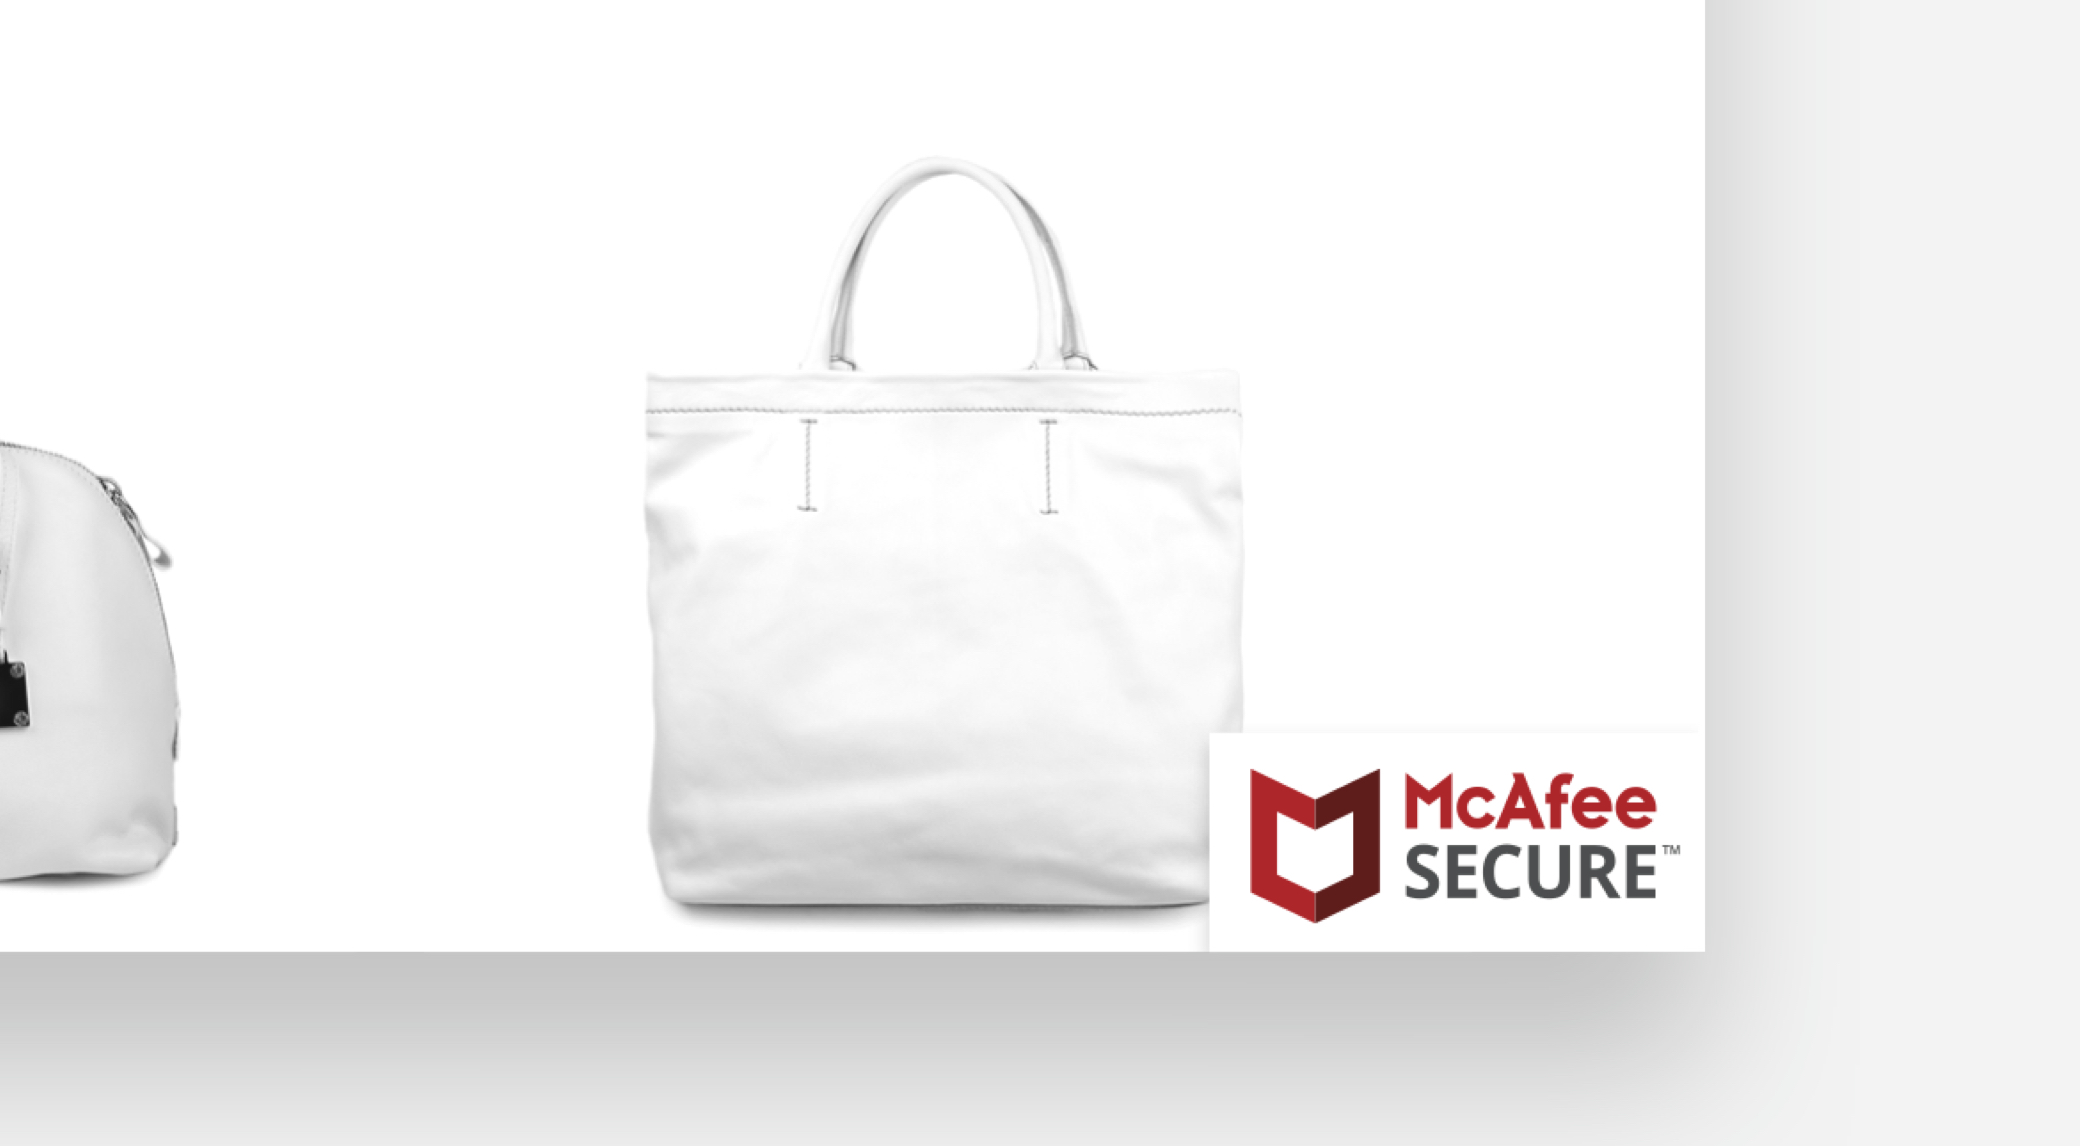 The McAfee SECURE trustmark